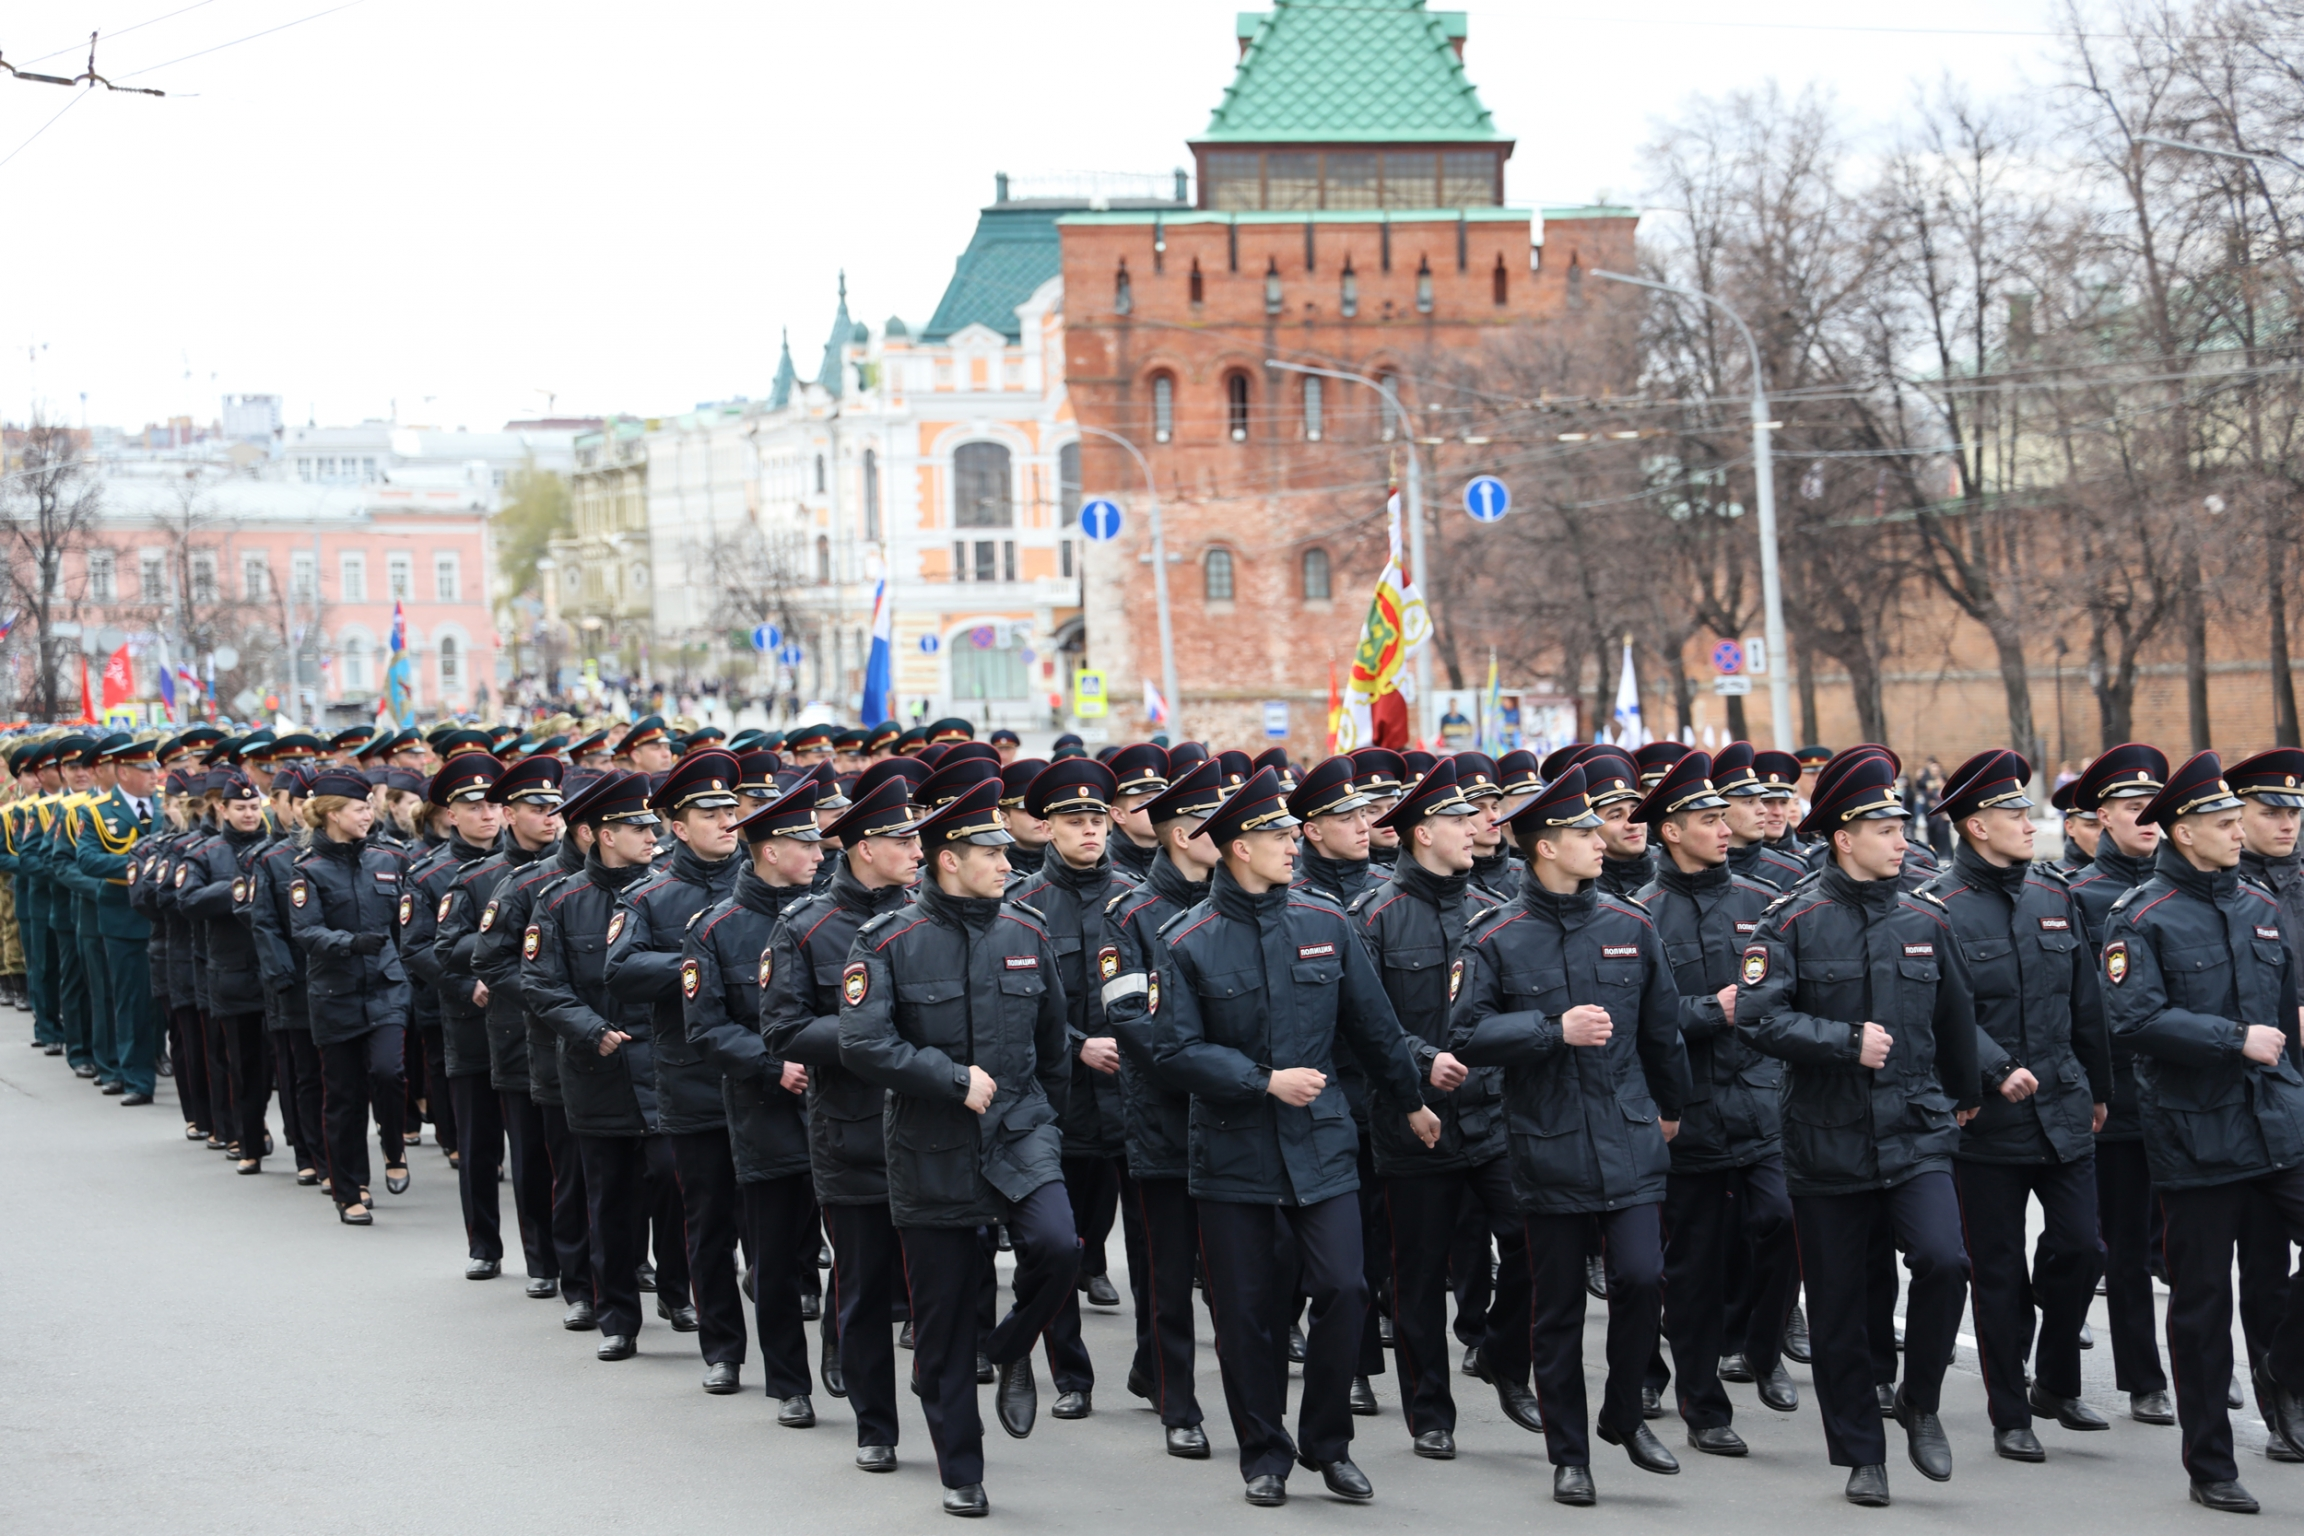 Men in miltary uniforms and formation march down a street